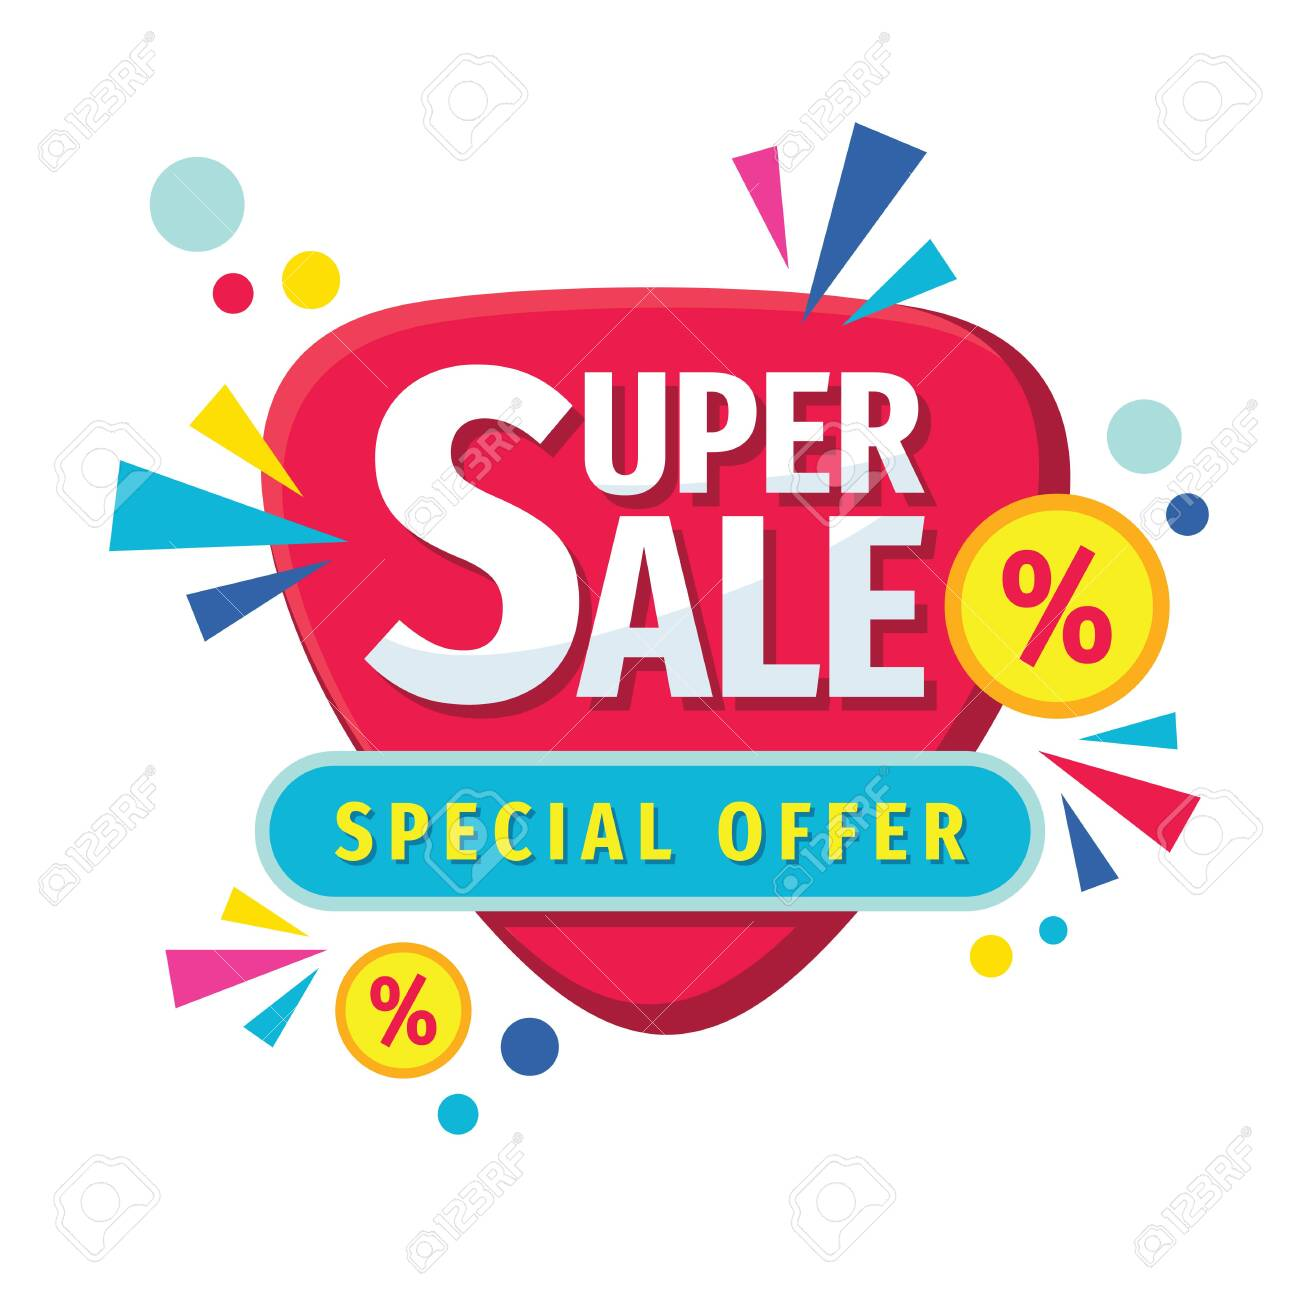 Super sale - concept banner vector illustration. Abstract discount percent promotion layout on white background. Special offer. Design elements. - 154419869